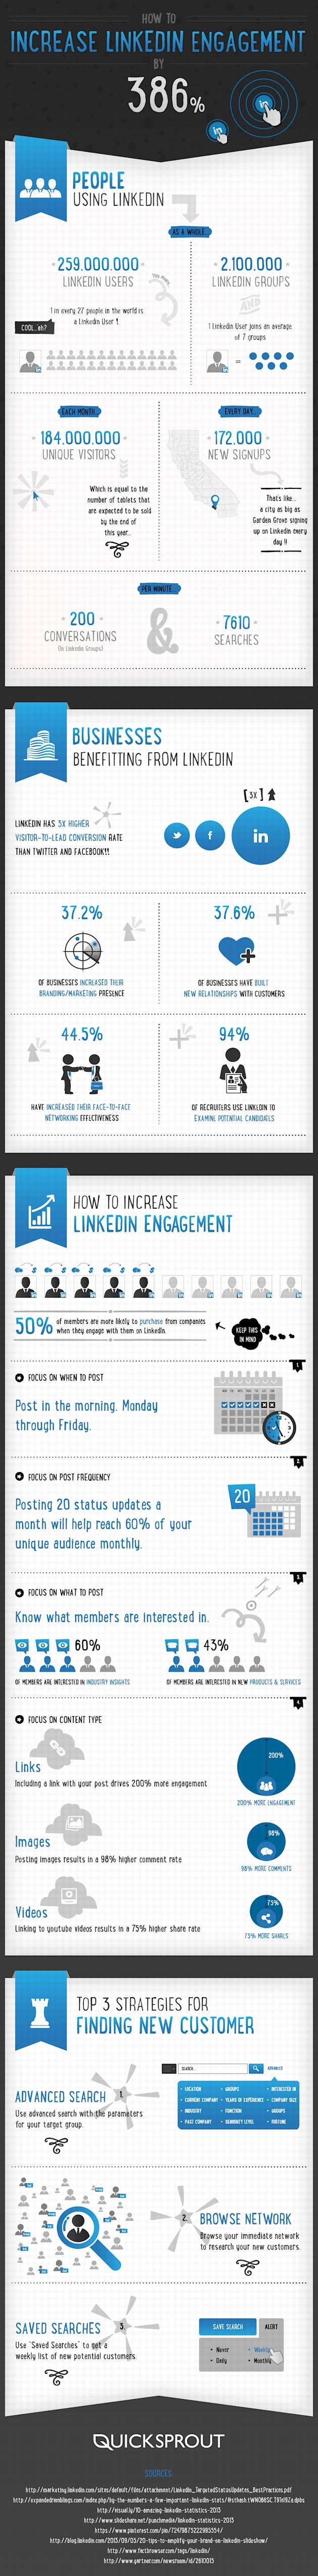 Why You Should Be Using LinkedIn For Your B2B Marketing [21 Facts] image Increaselinkedinengagement